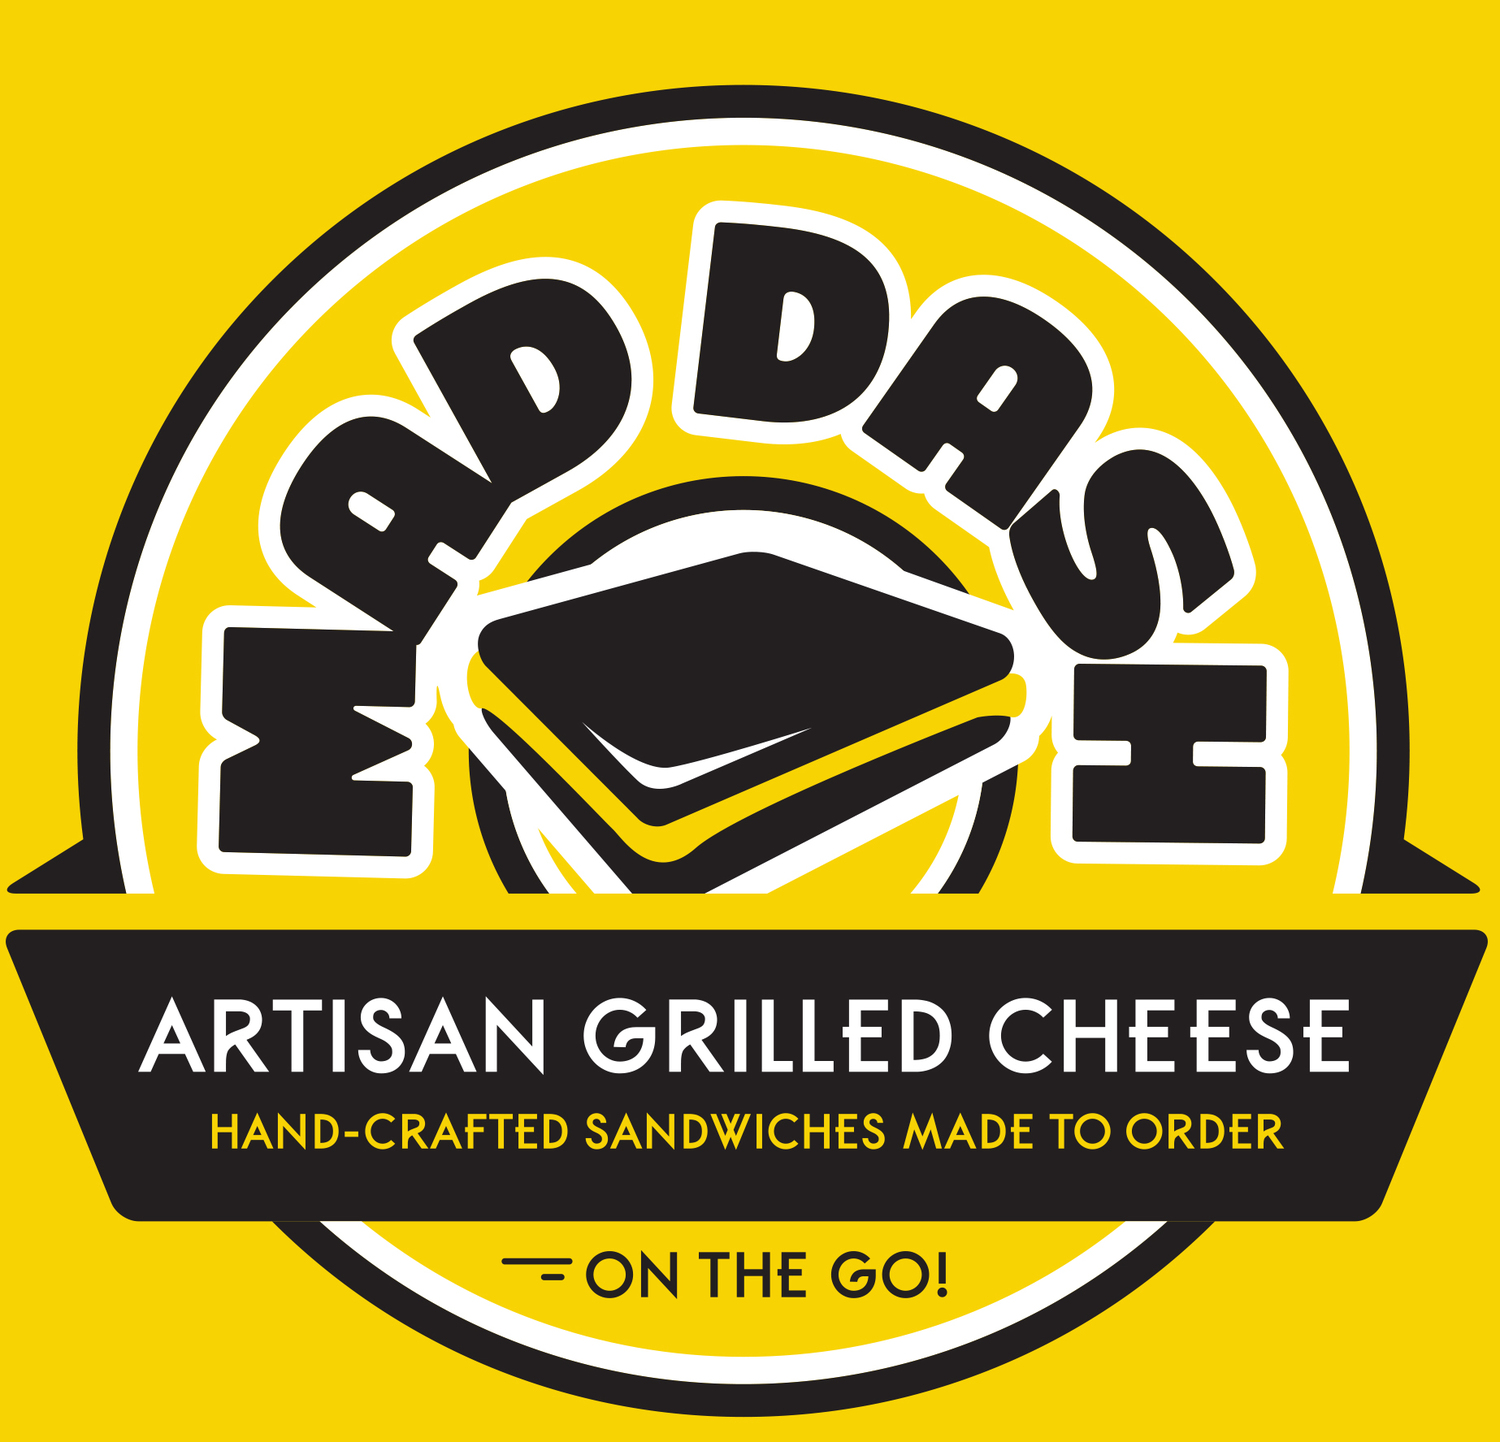 Mad Dash Grilled Cheese